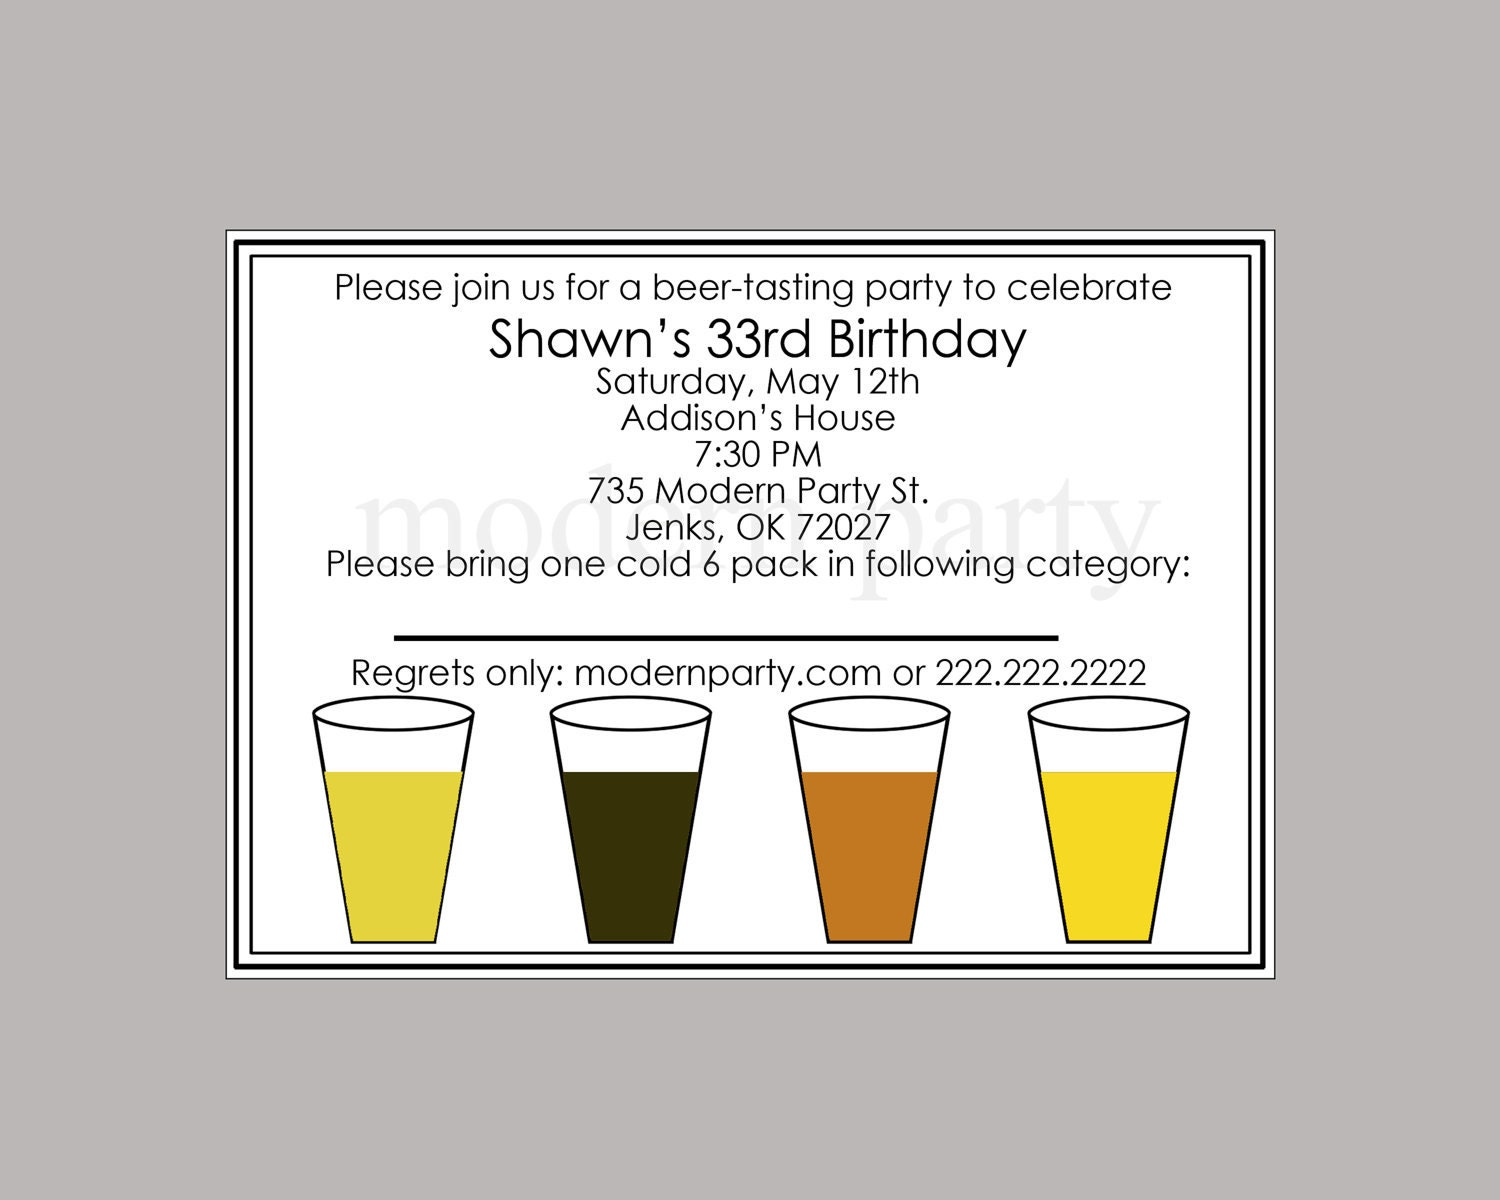 Beer Tasting Party Invitations Images